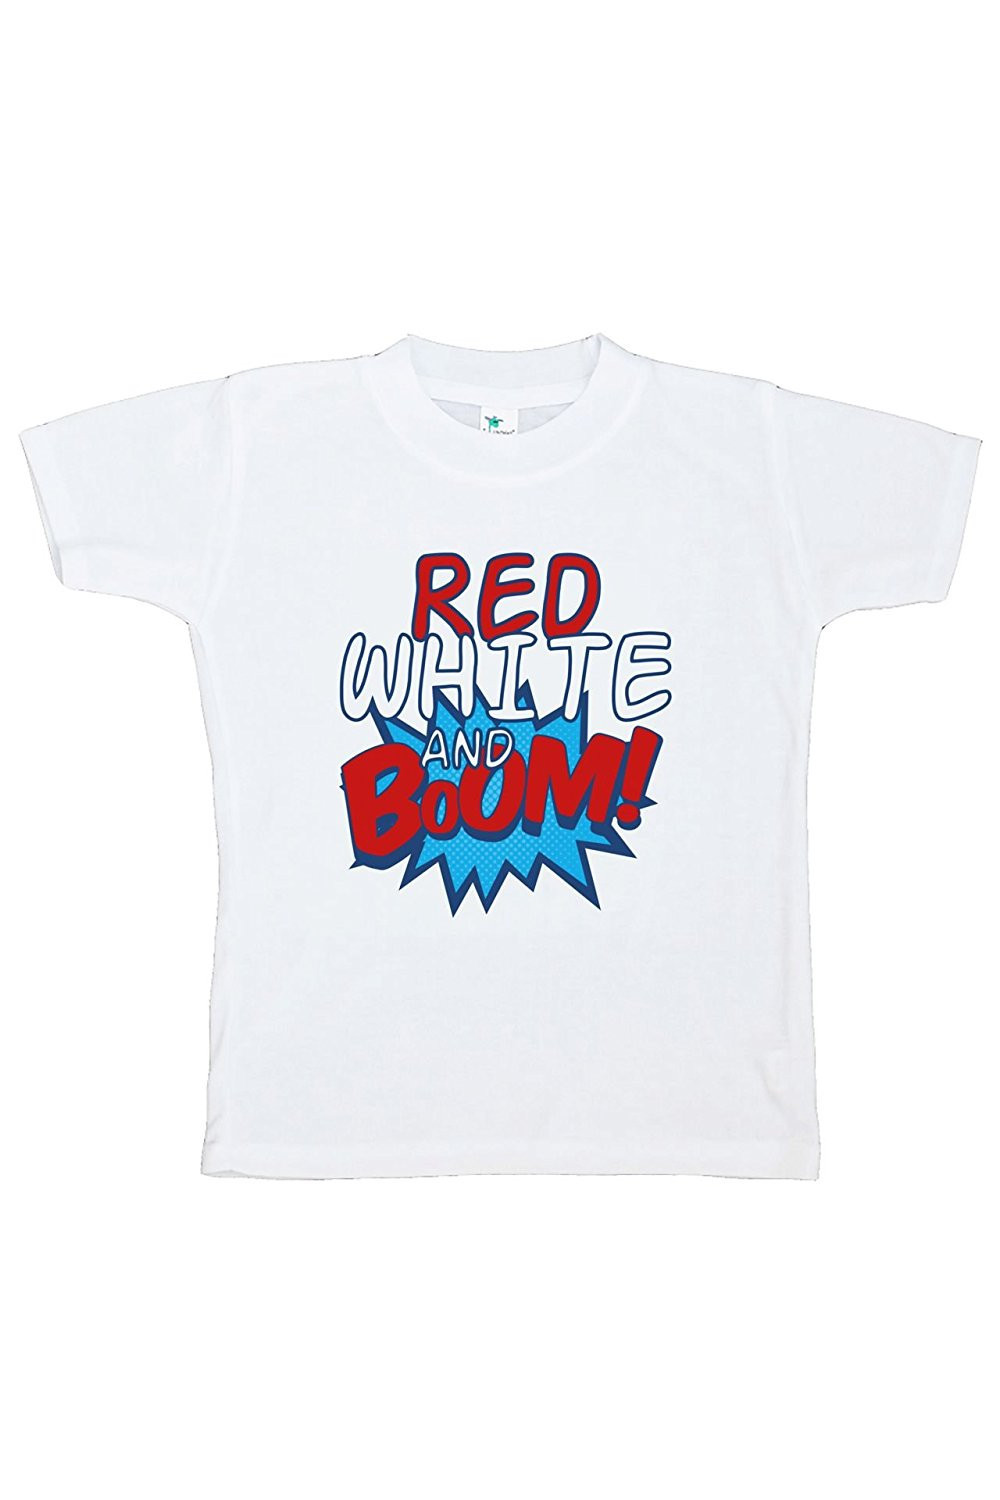 Custom Party Shop Kids Red White & Boom 4th of July T-shirt - X-Large